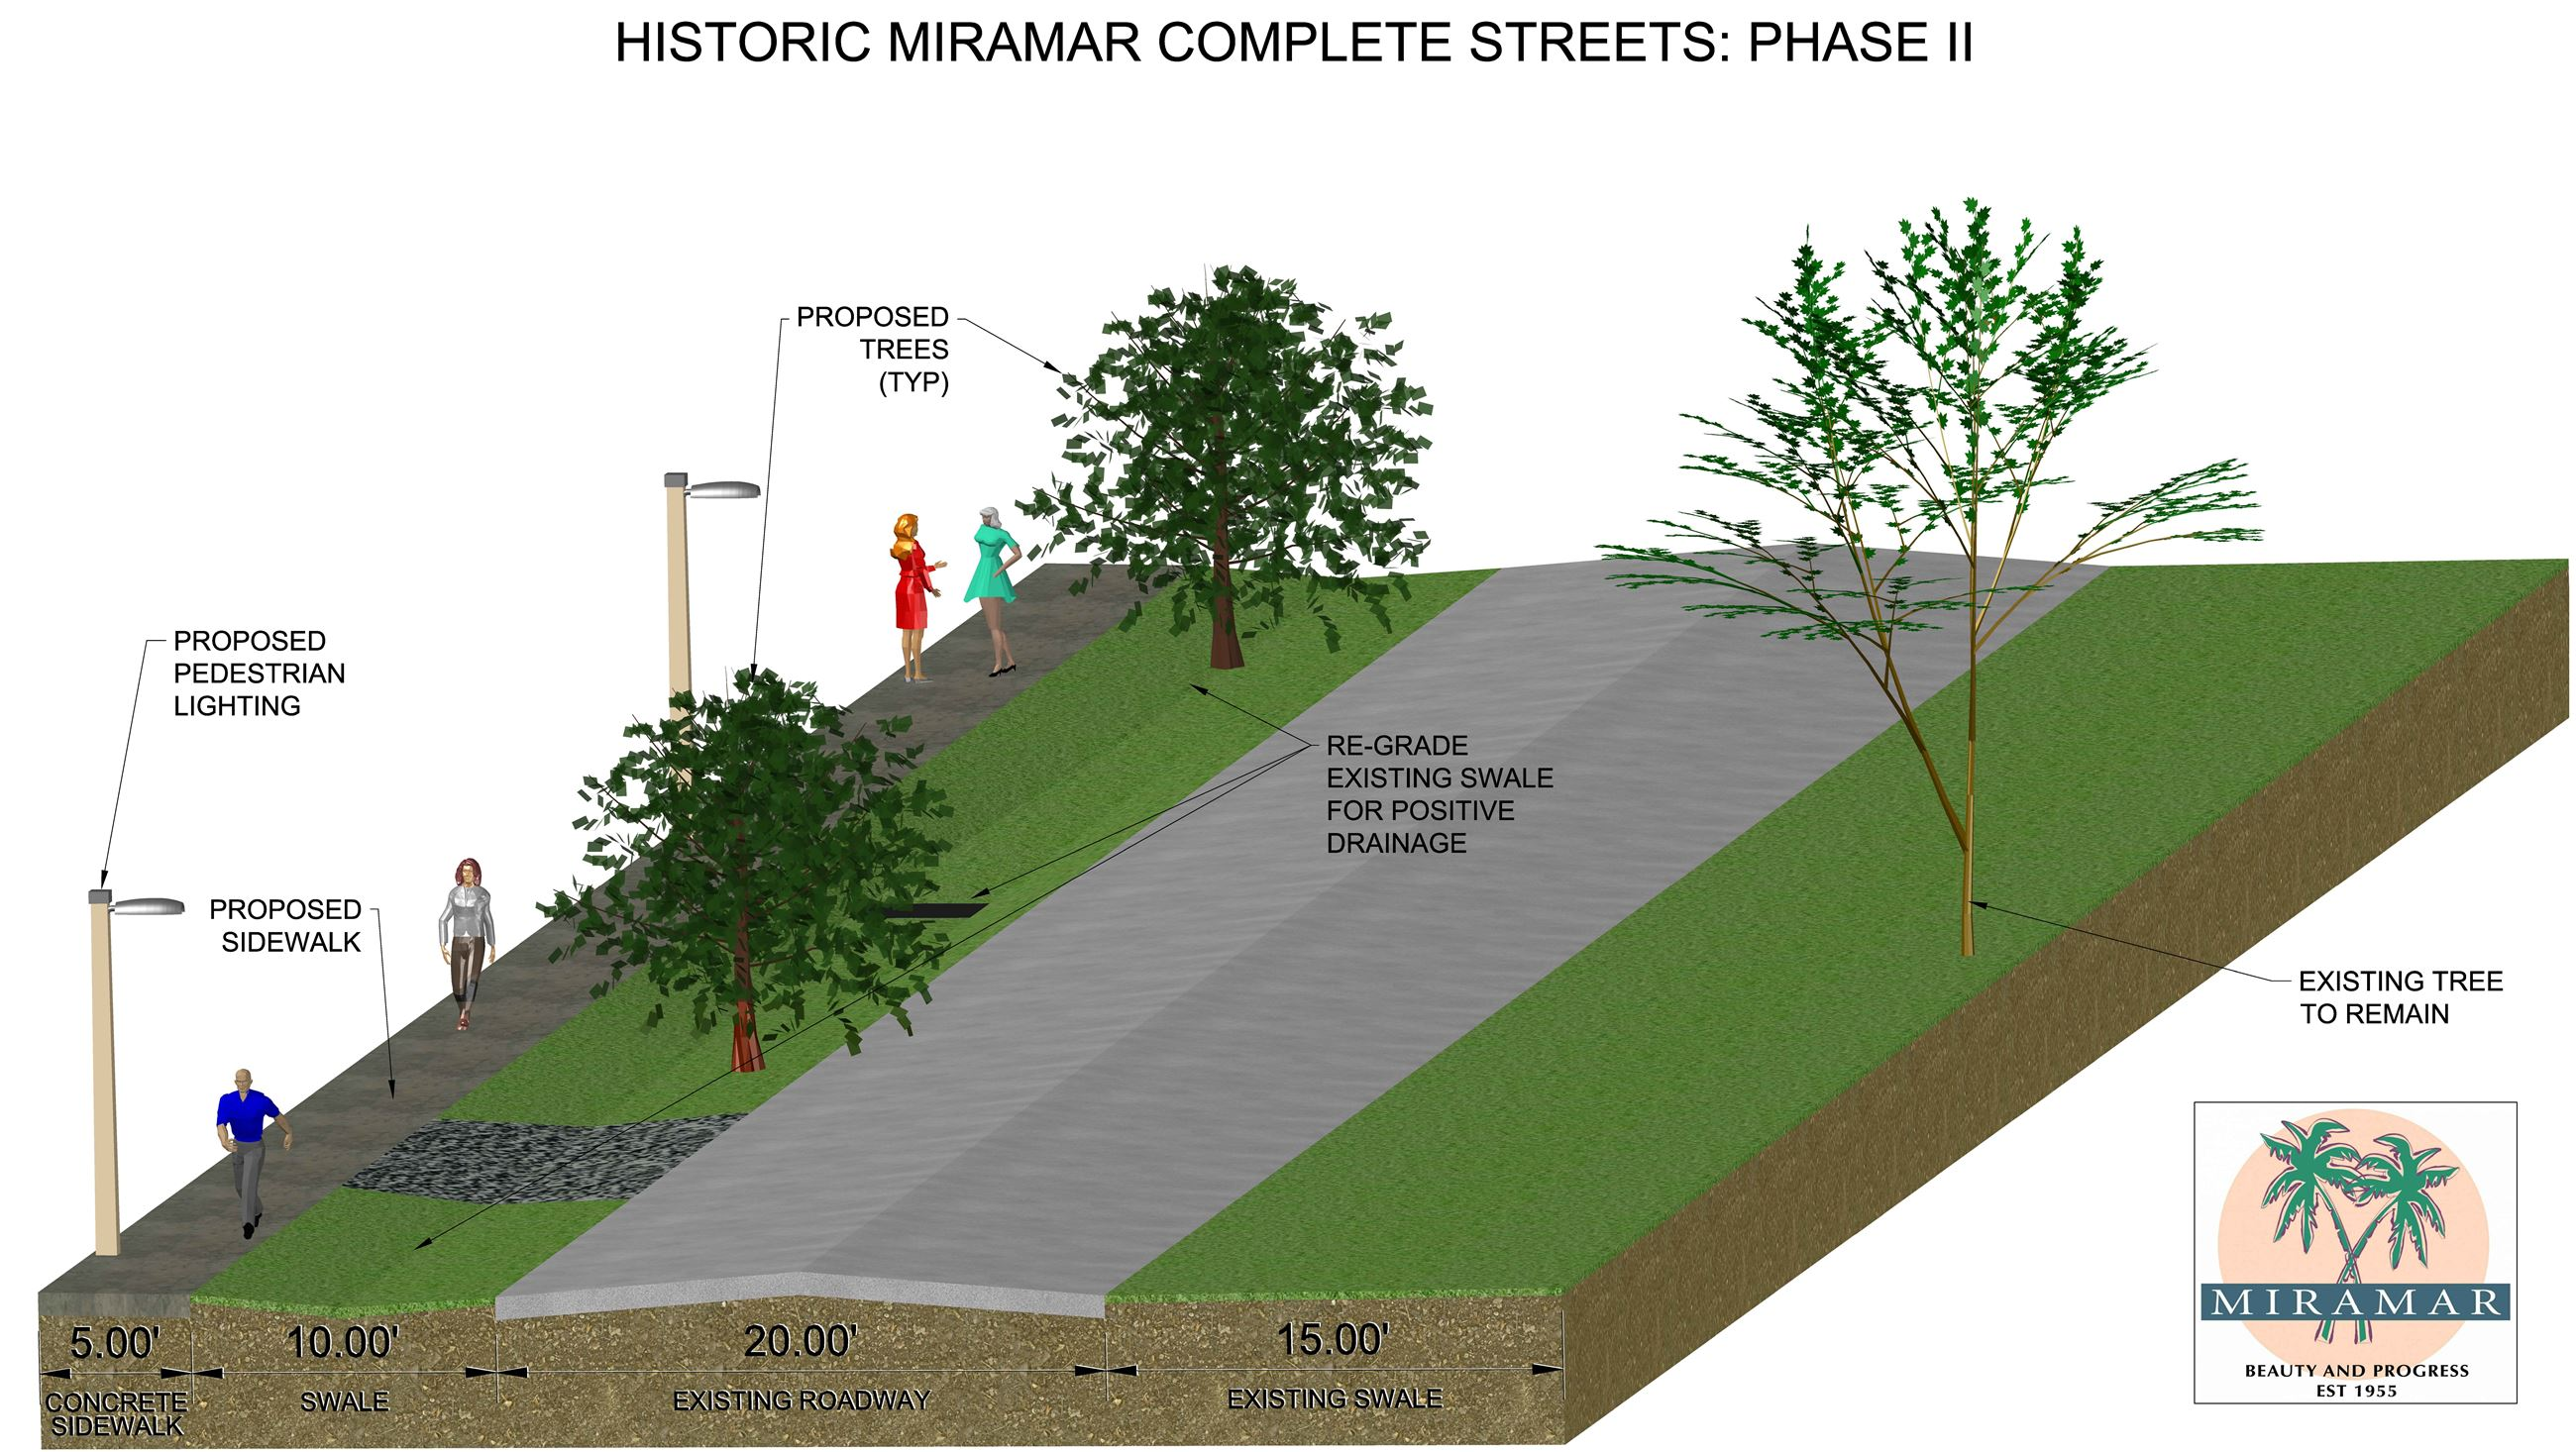 Historic Miramar Complete Streets 2